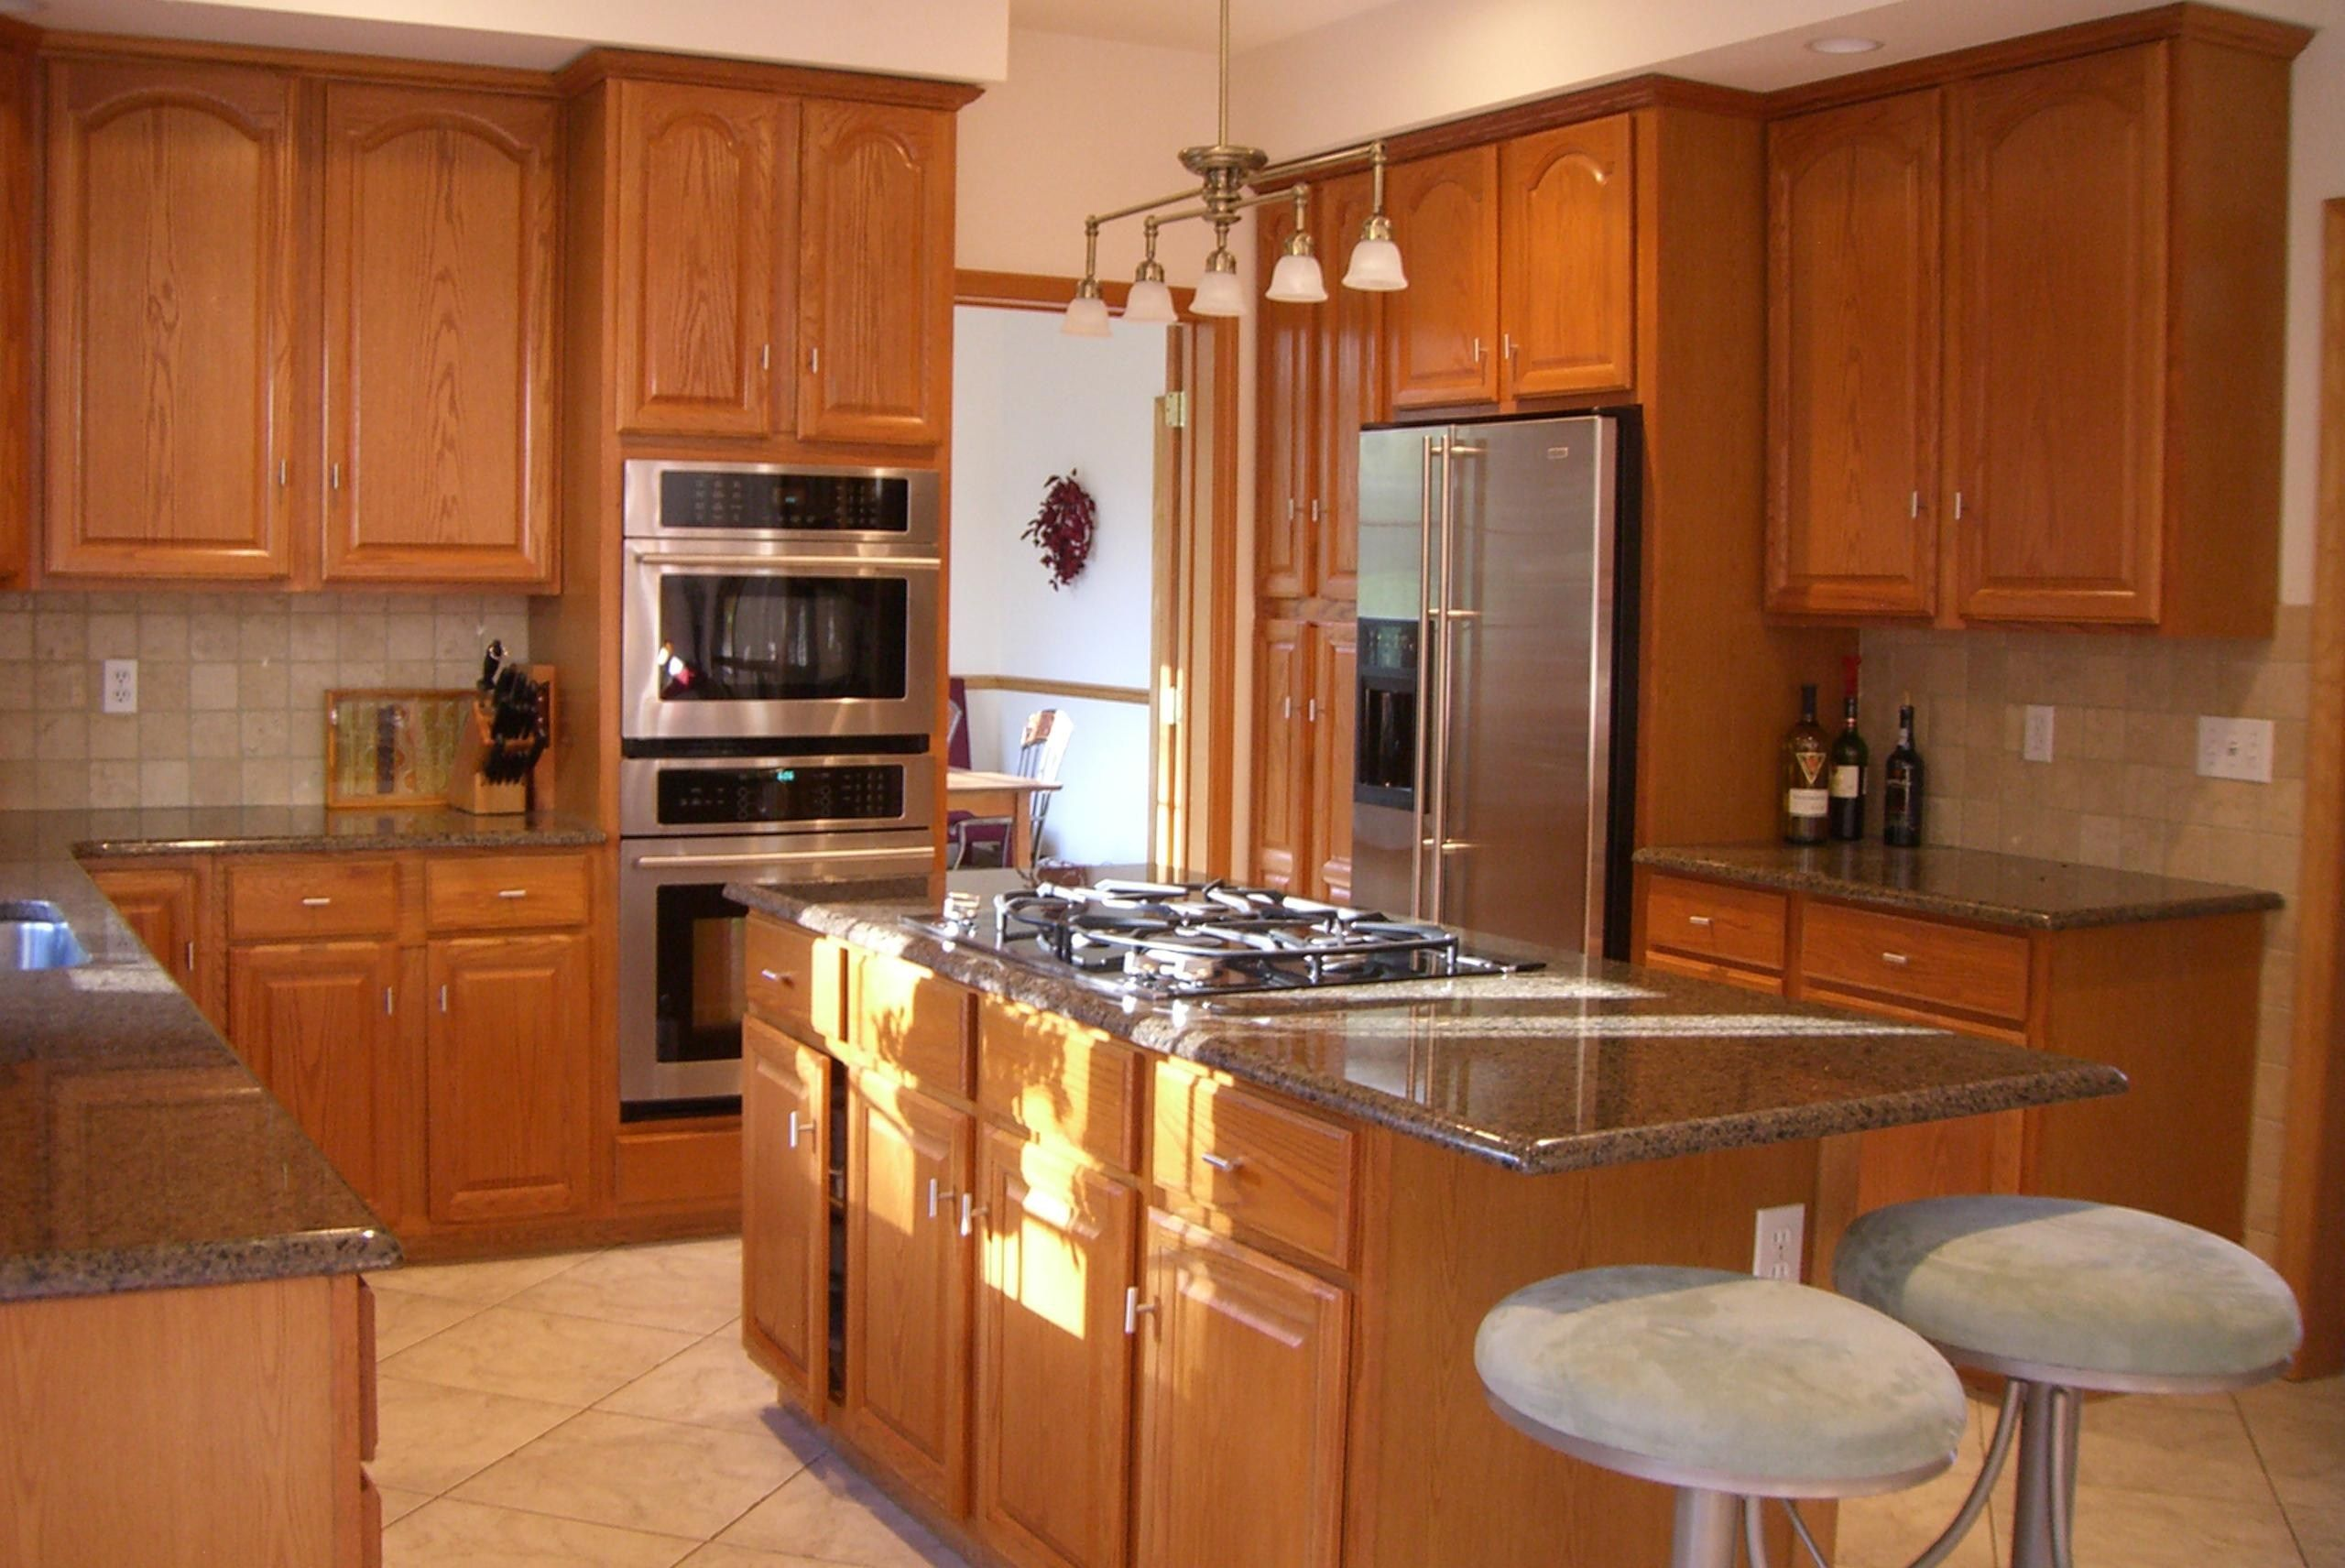 kitchen design ideas kitchen designs small kitchen design cabinets kitchen pictures red kitchen cabinets